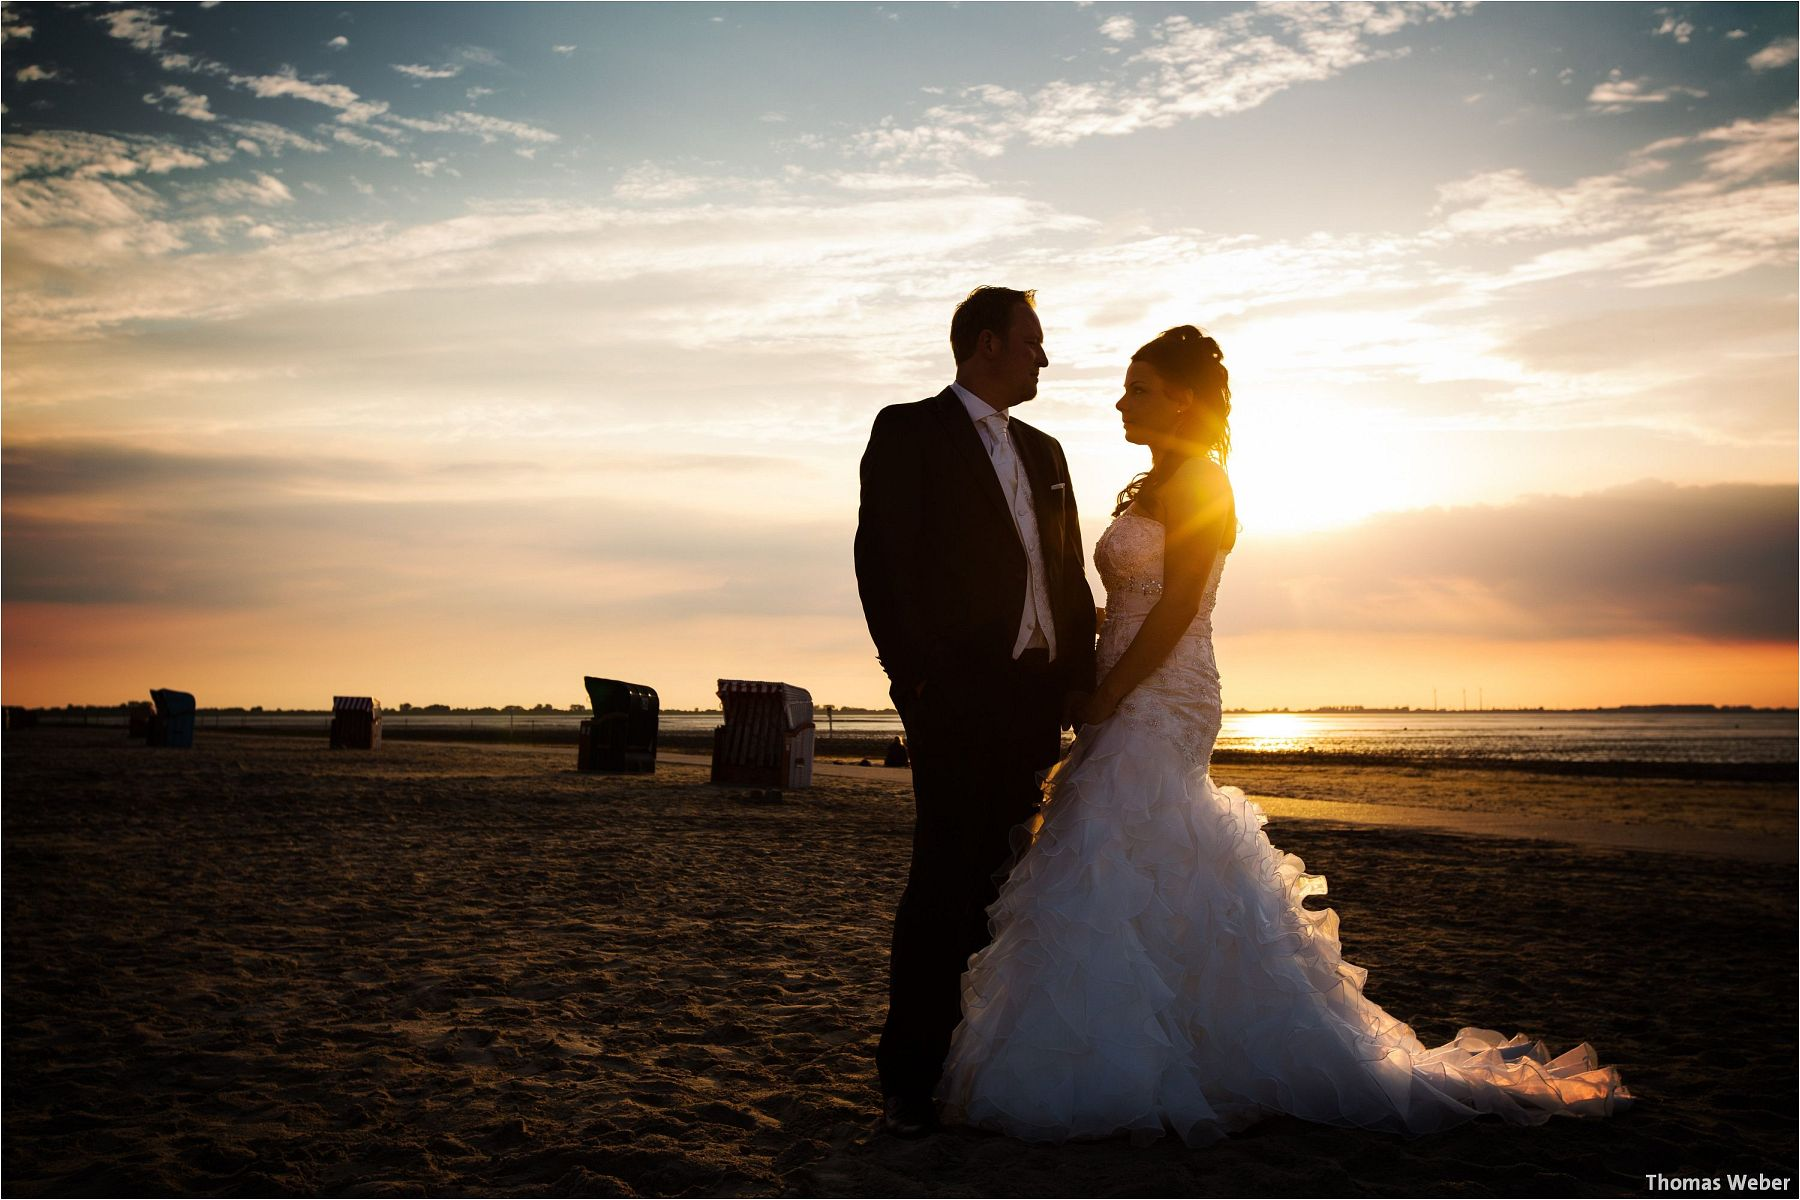 Hochzeitsfotograf Oldenburg: Hochzeitsportraits bei einem After Wedding Shooting am Nordsee-Strand von Dangast/Varel bei Sonnenuntergang (10)